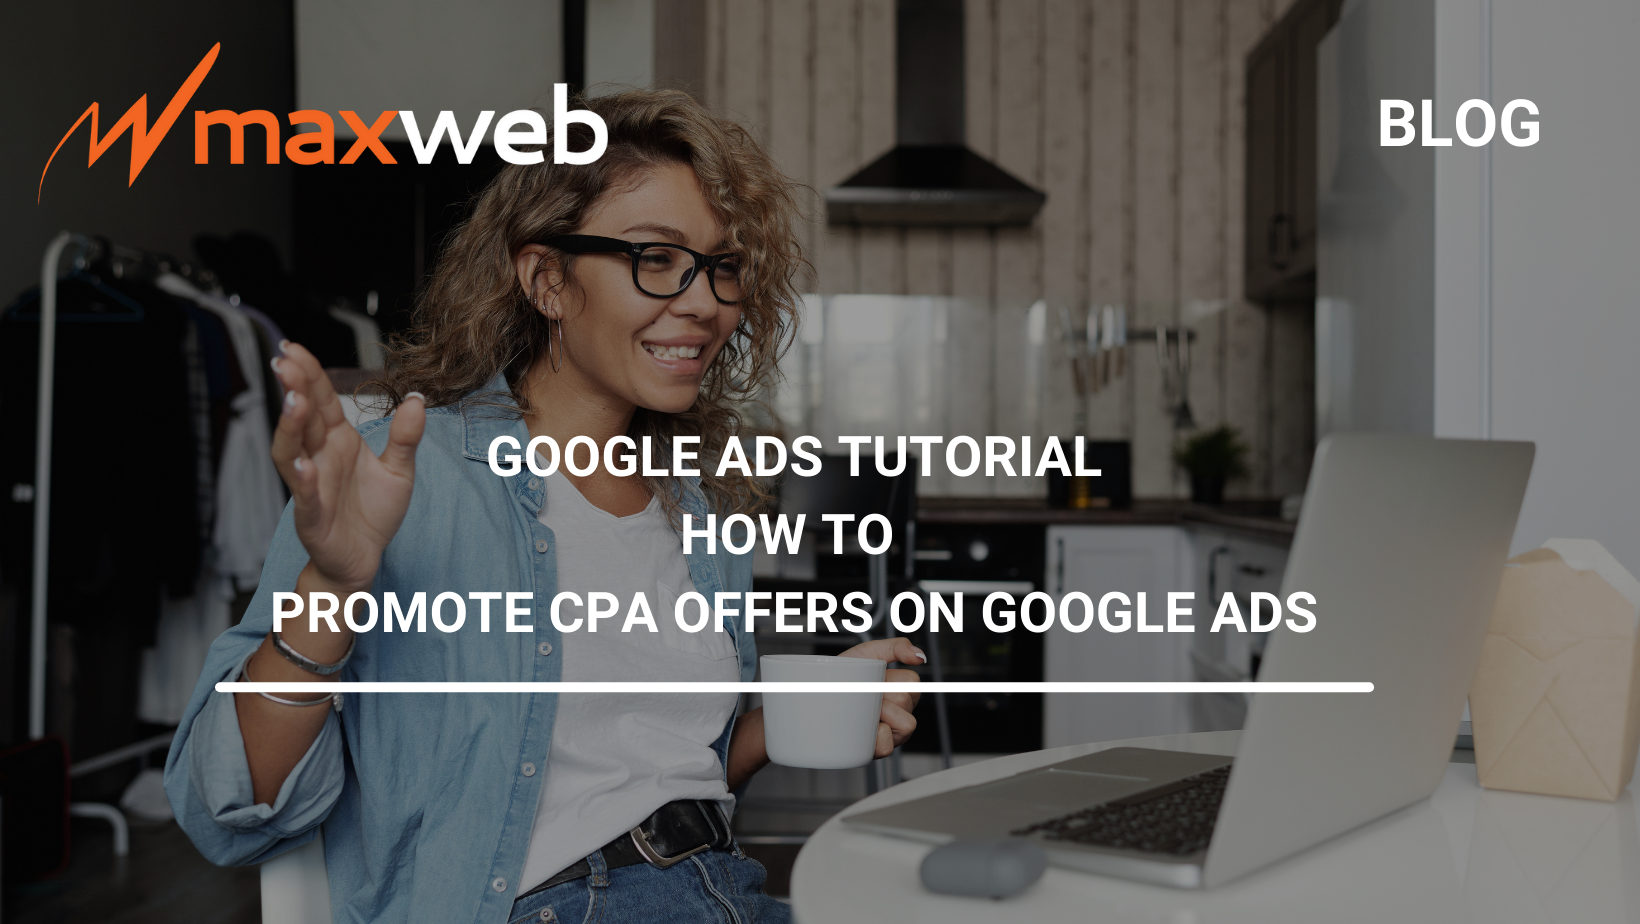 Google Ads Tutorial - How To Promote CPA Offers on Google Ads